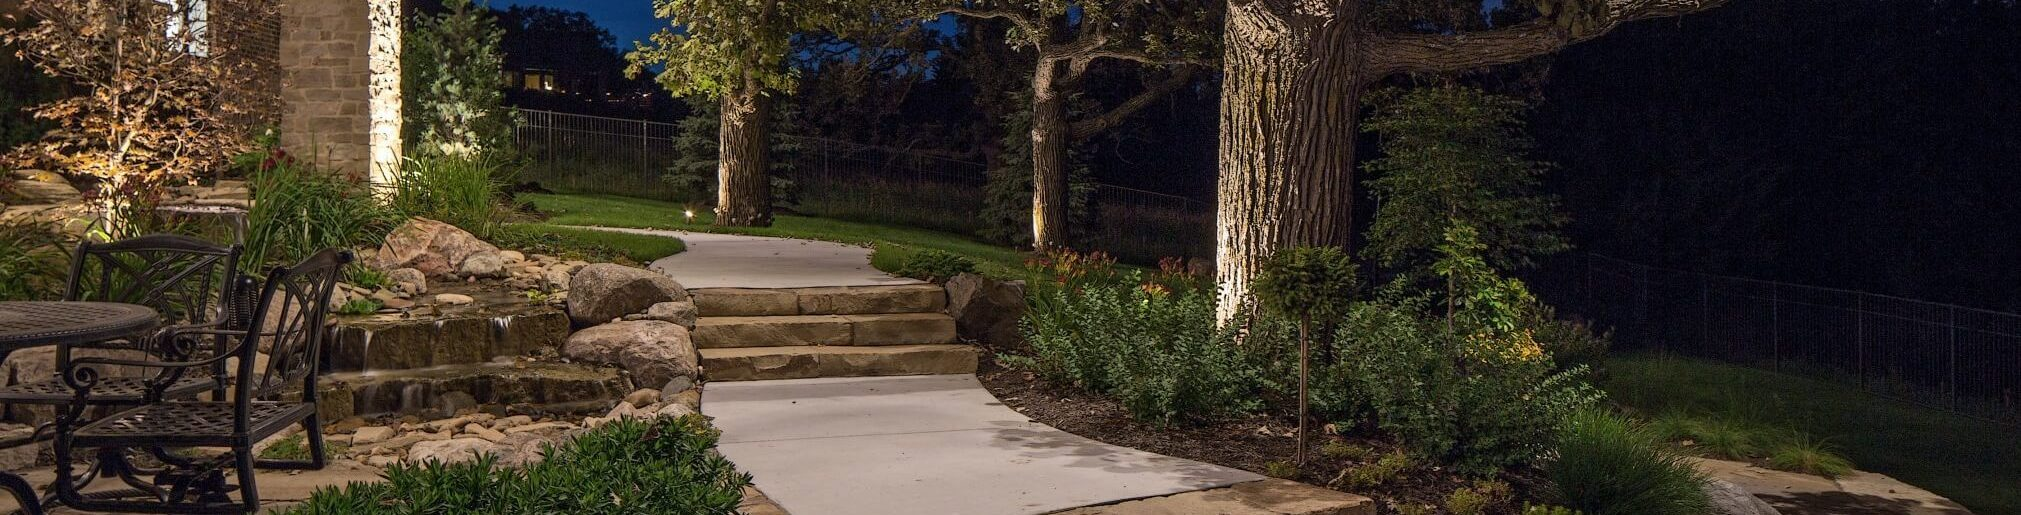 Residential Landscape Lighting Omaha NE